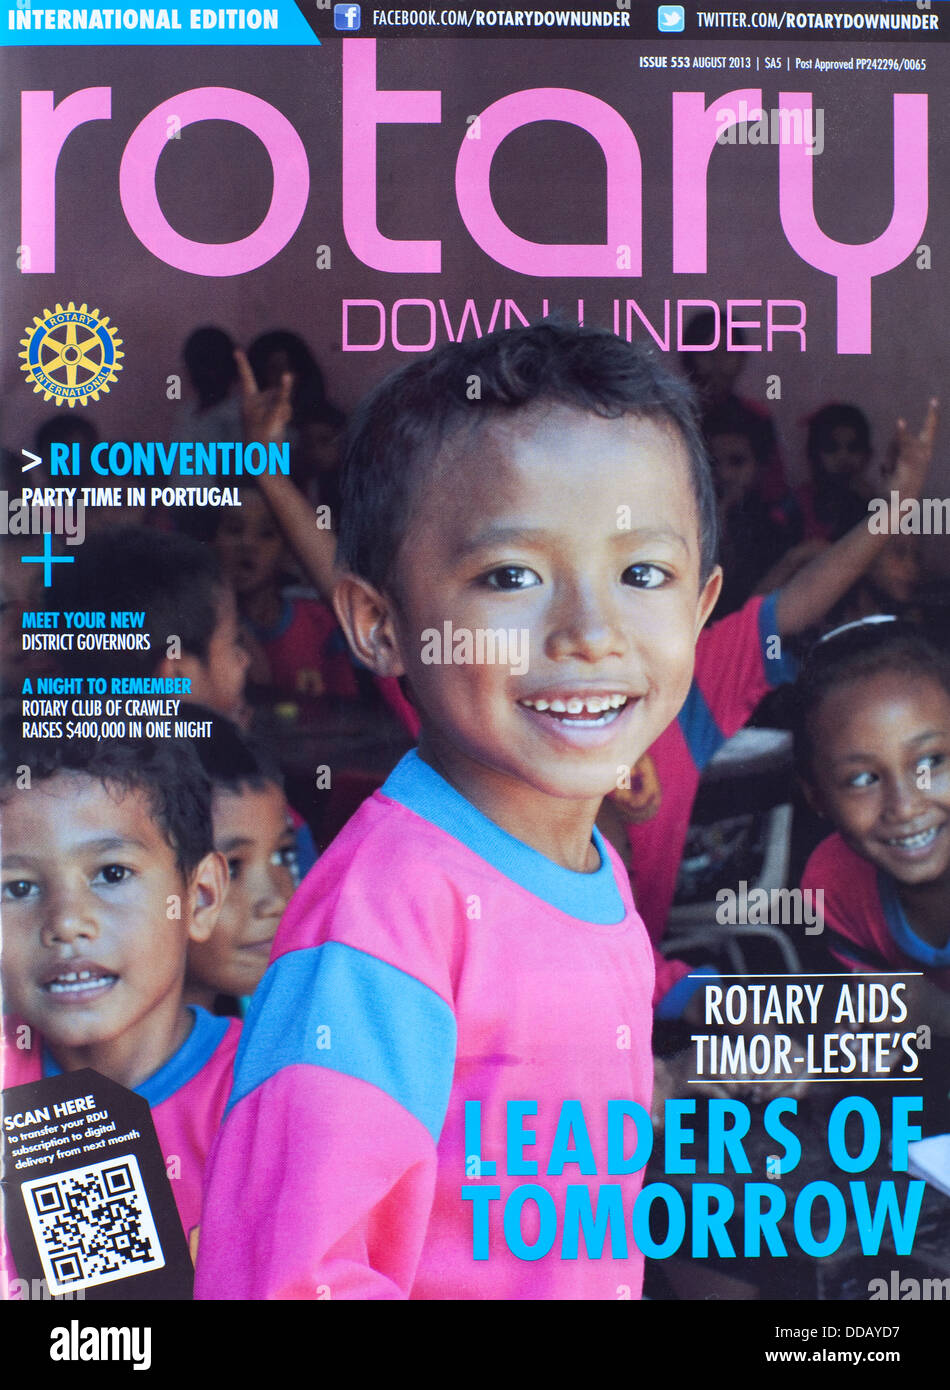 Rotary Downunder Magazine front cover - Stock Image